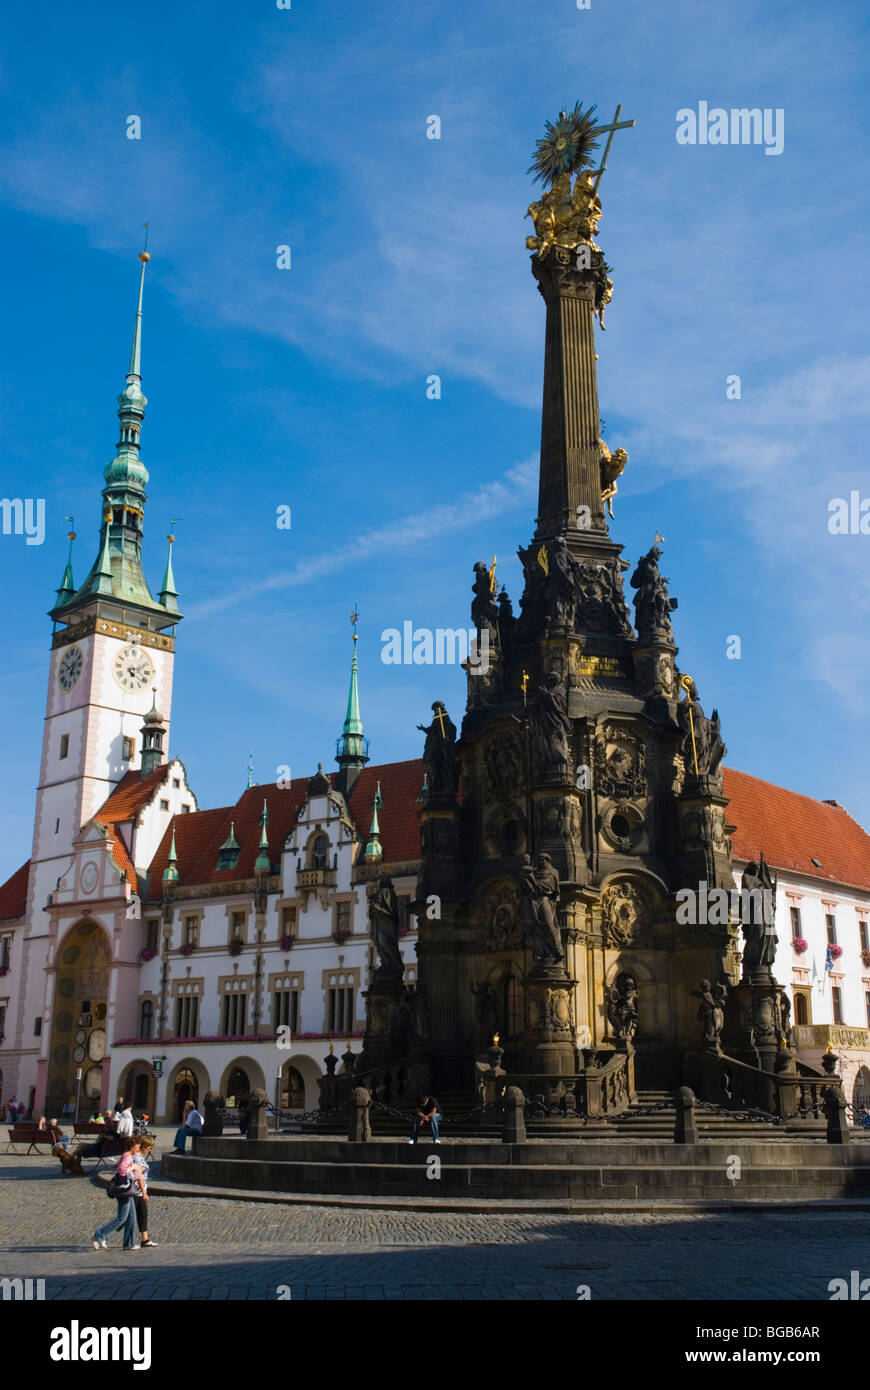 Holy Trinity Column and town hall at Horni namesti square in Olomouc Czech Republic Europe - Stock Image